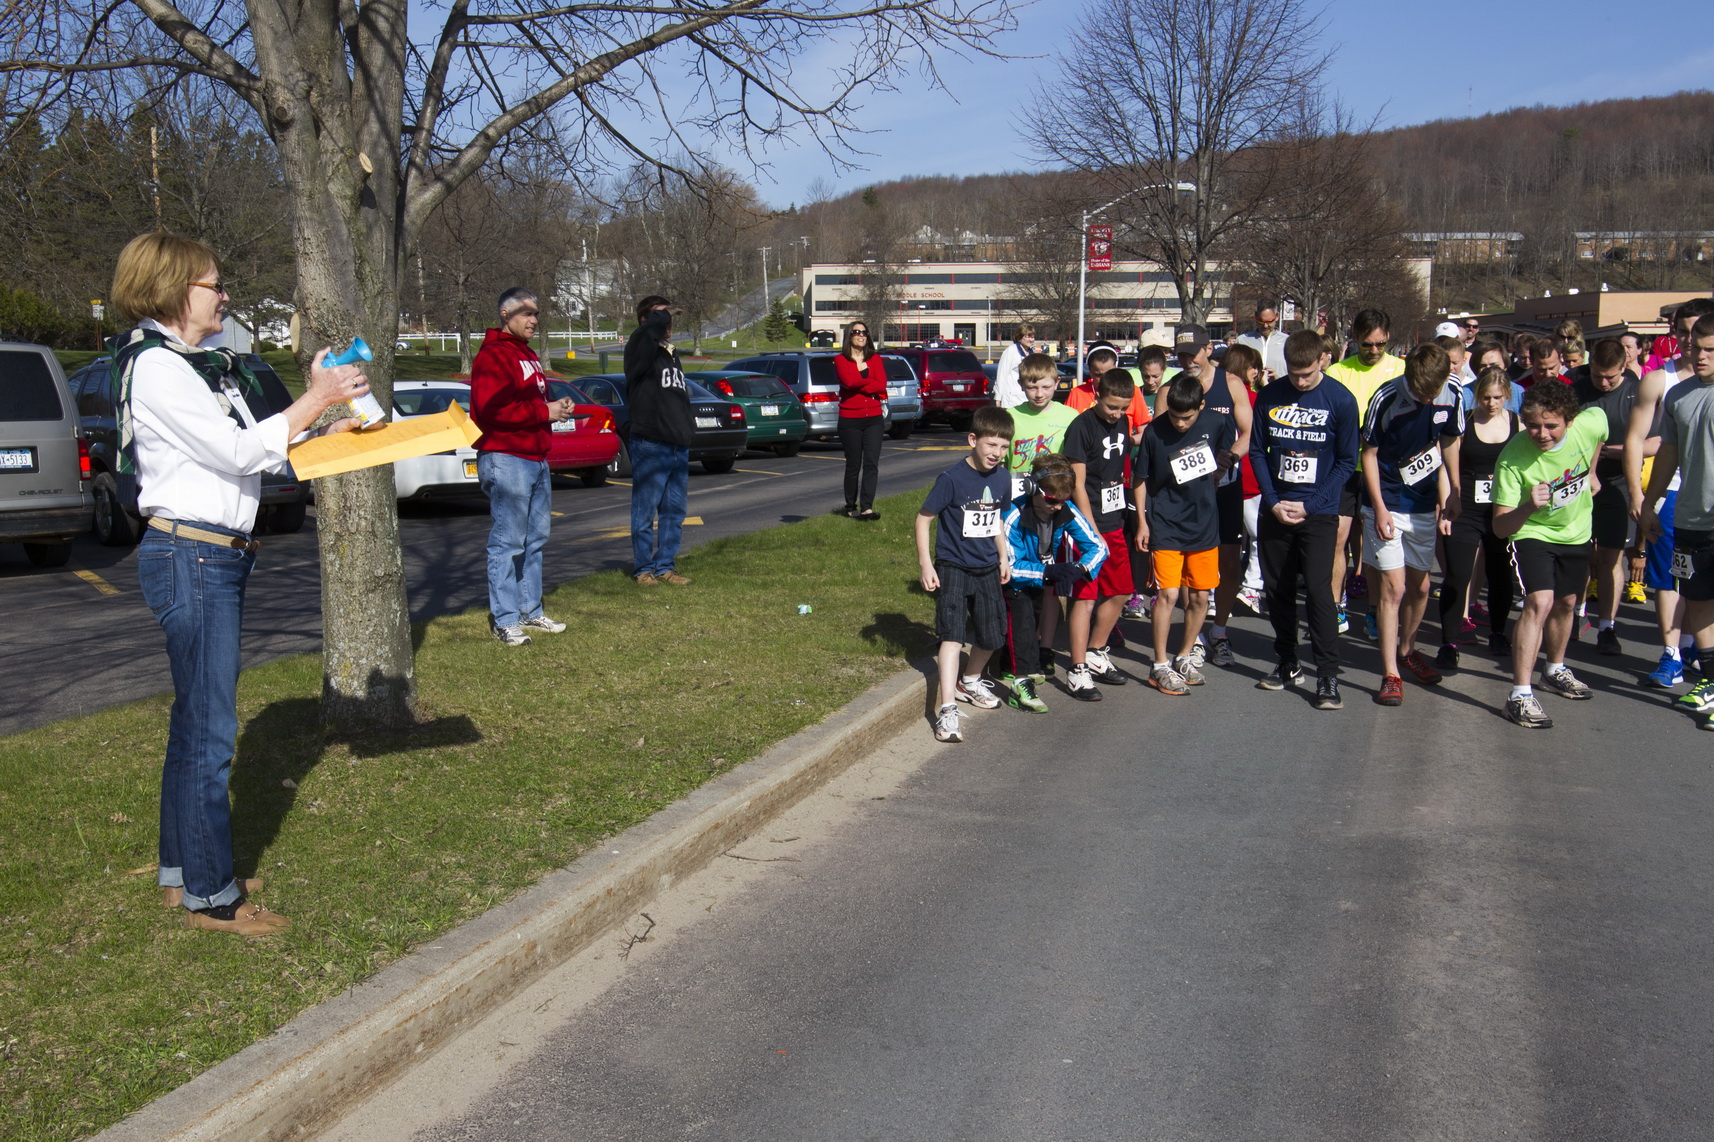 For the second year in a row, Aileen sounded the start of the Liberty High School Annual Spring Fling 5K.